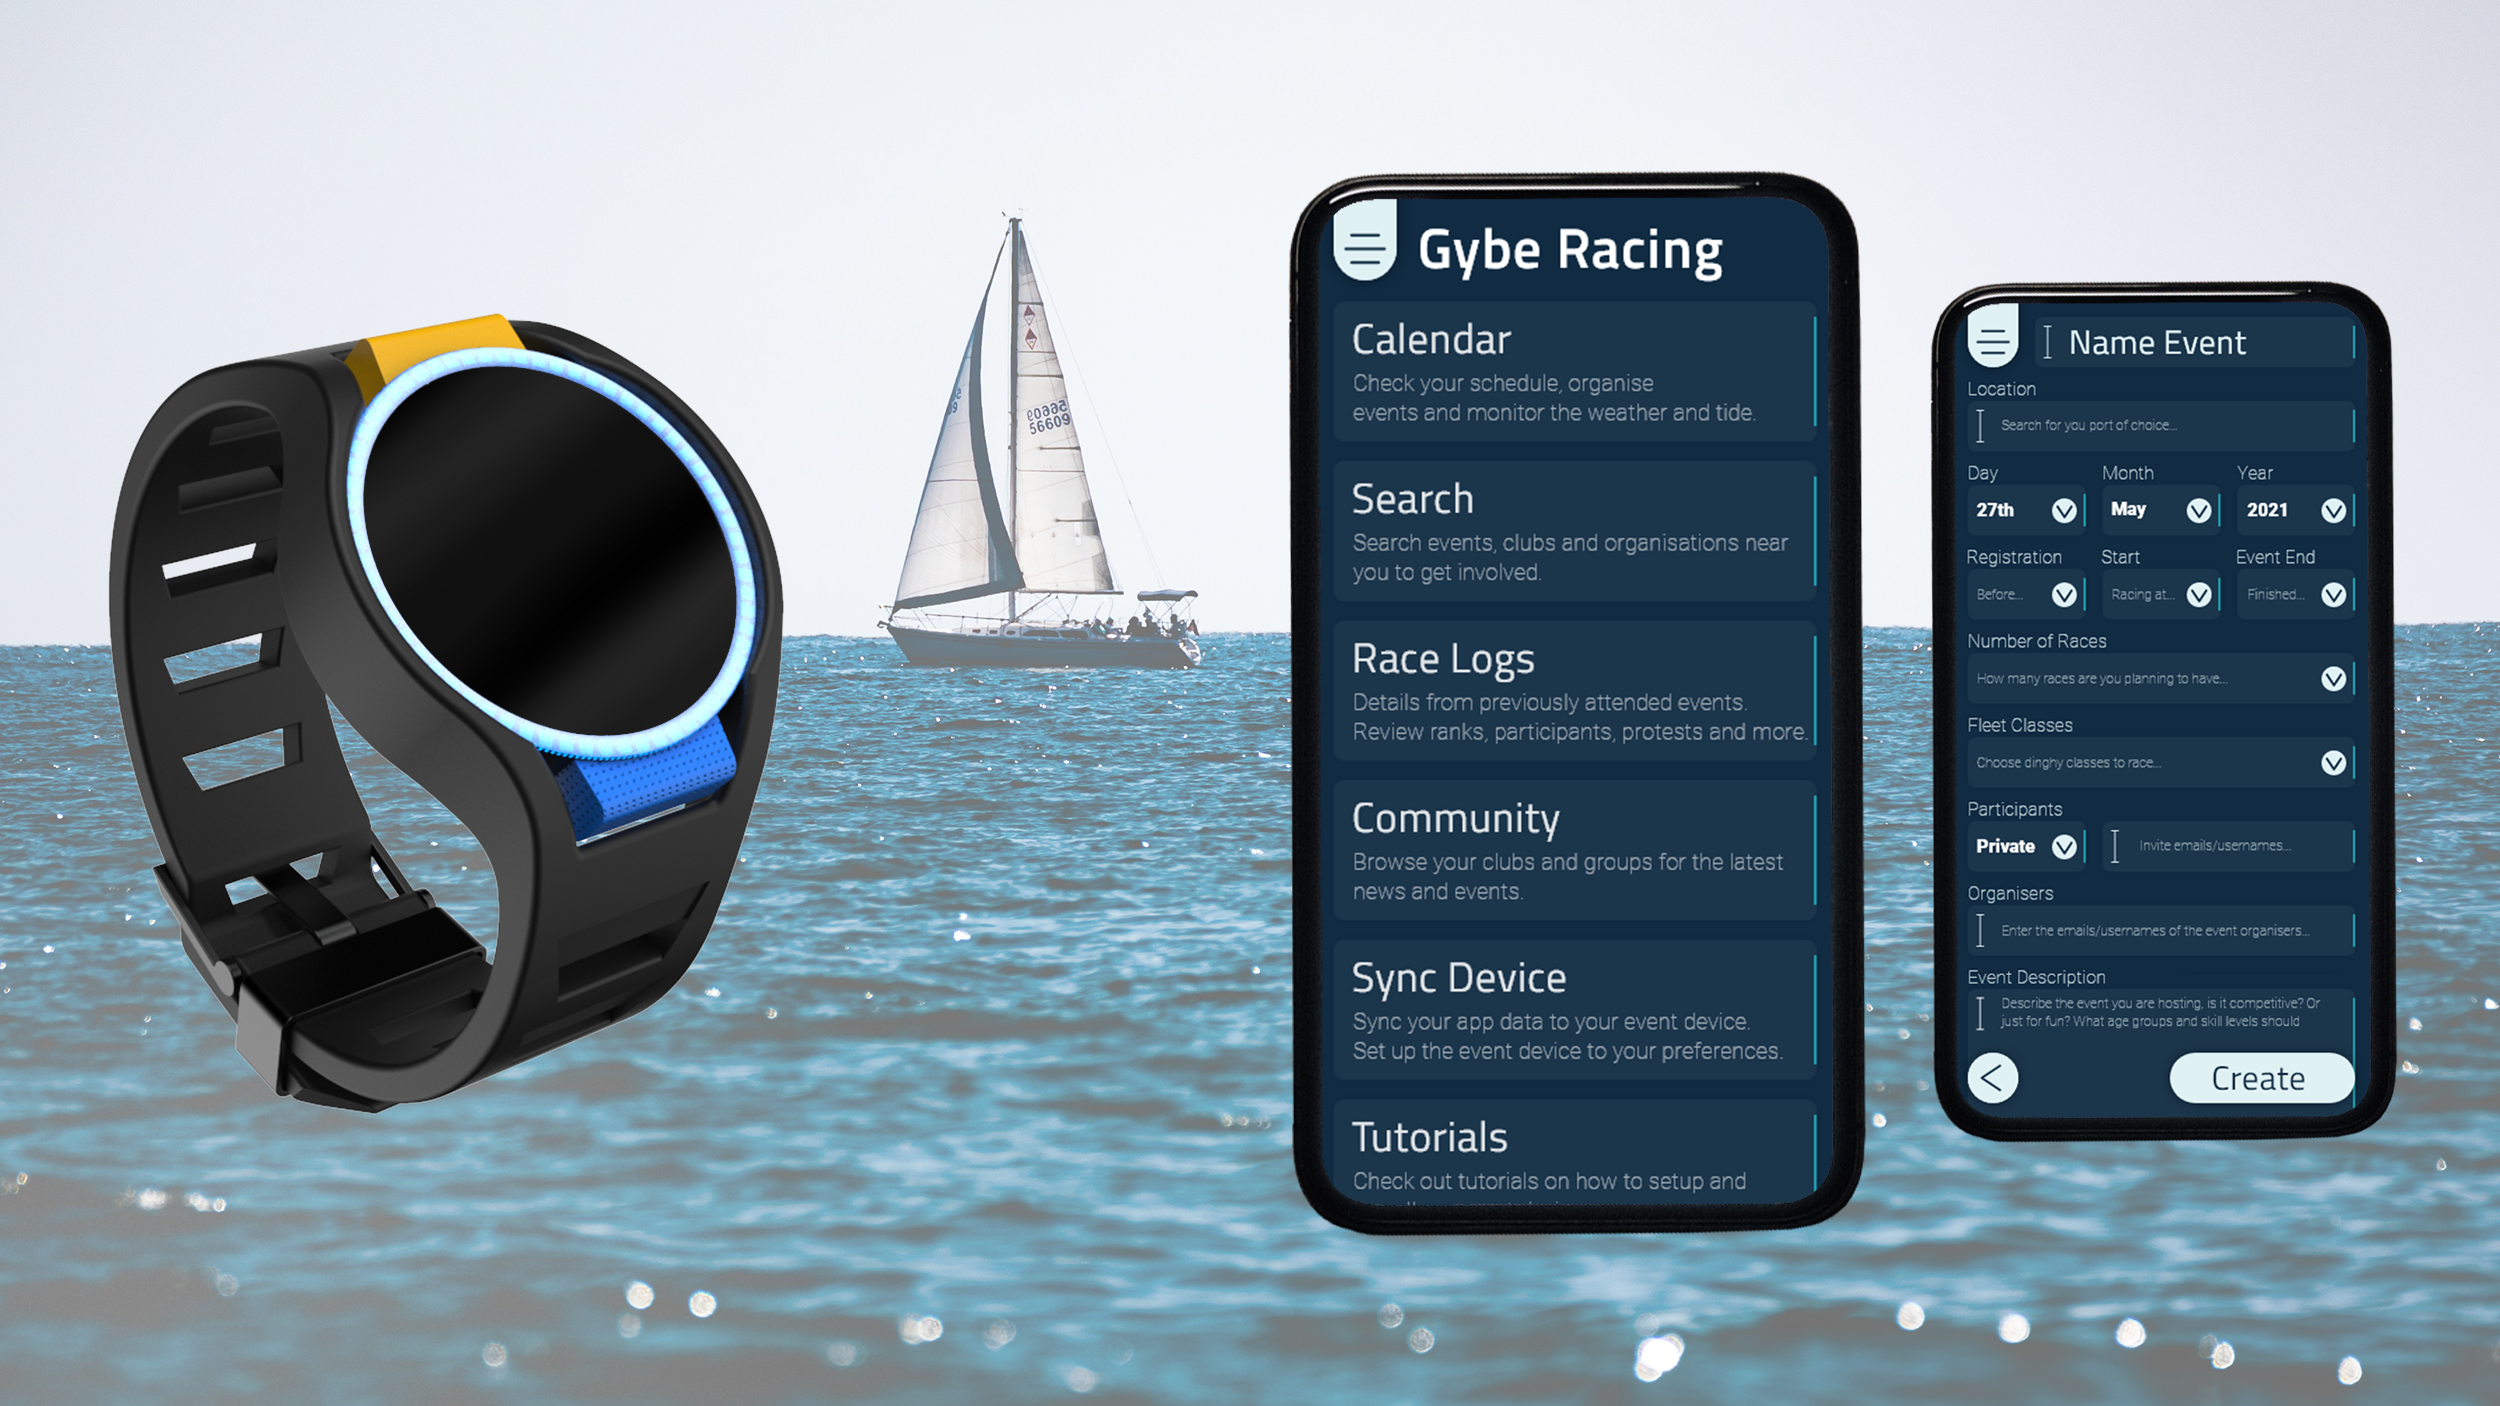 Basic CAD render of a wrist-worn communication device in black, blue and yellow, also two app screen layouts, on an ocean scene background